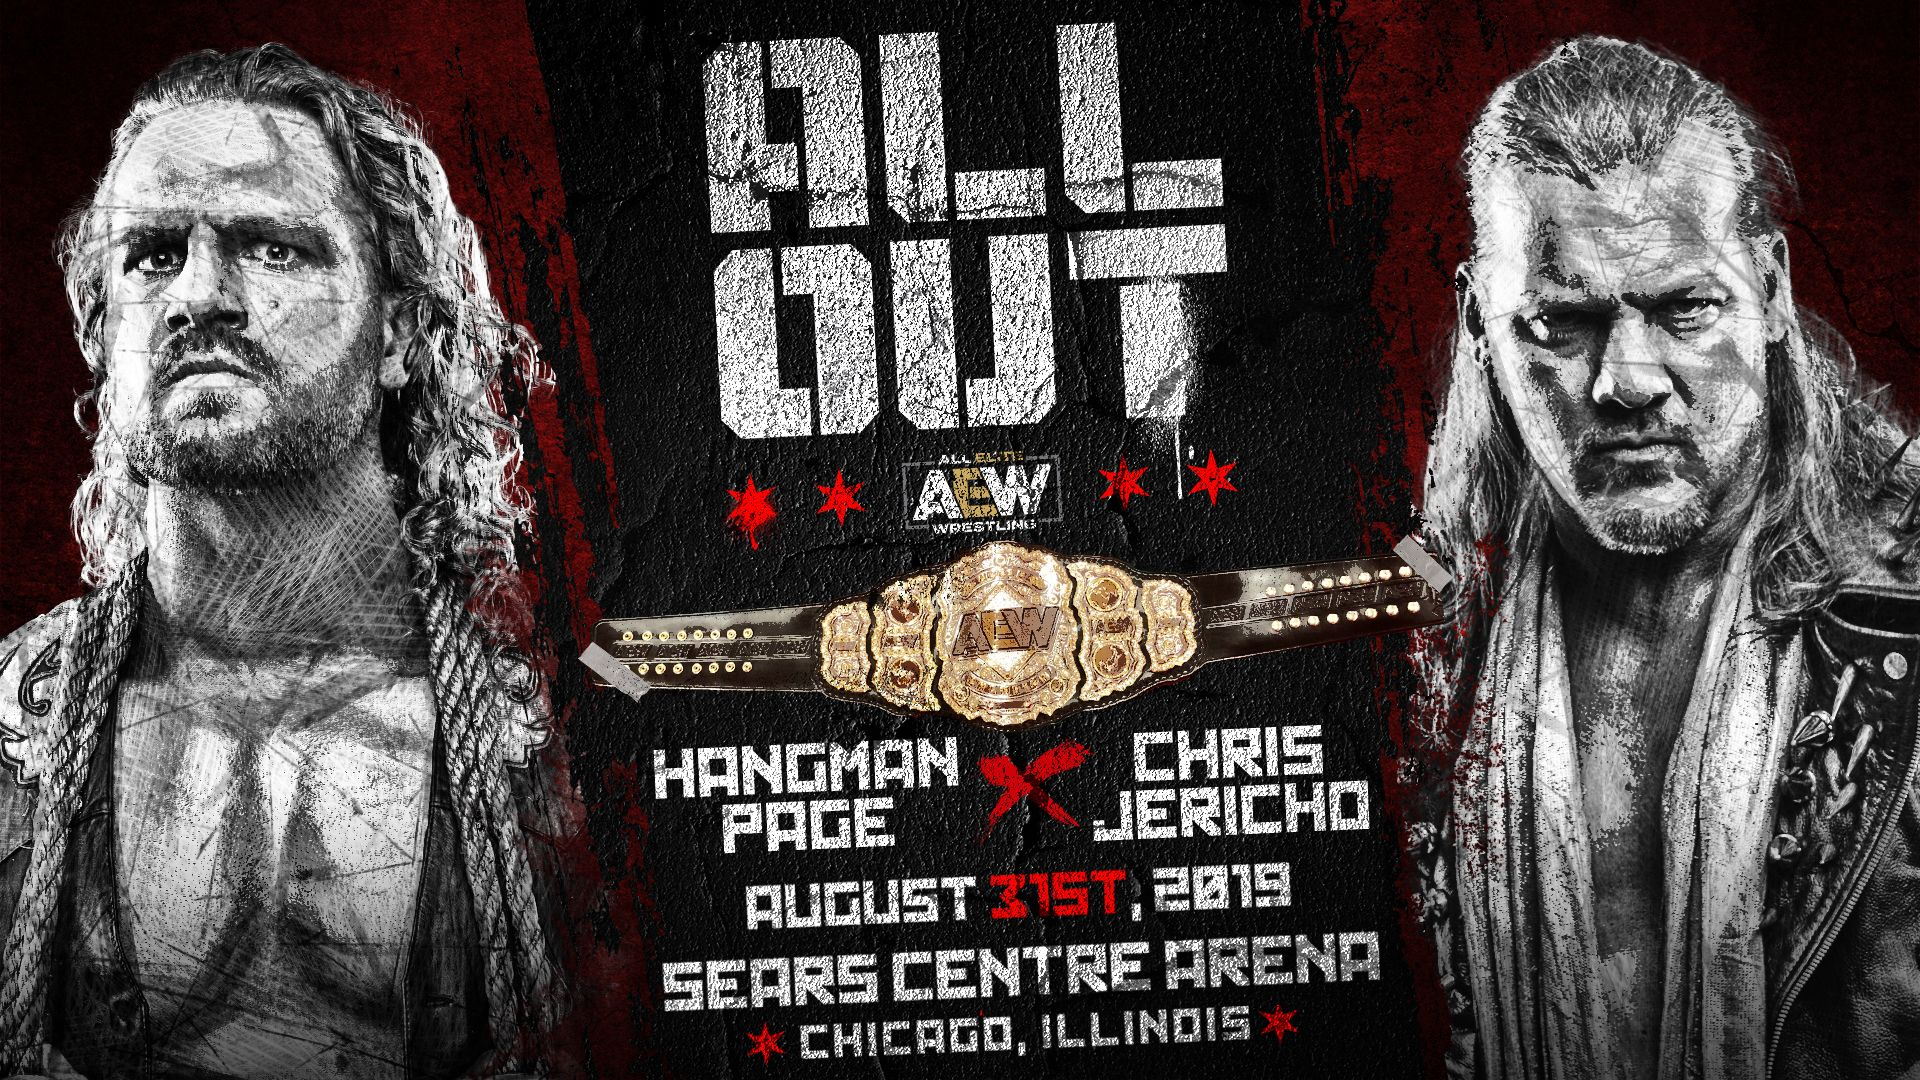 AEW All Out results: Chris Jericho becomes first AEW heavyweight champion; Lucha Bros, Young Bucks shine